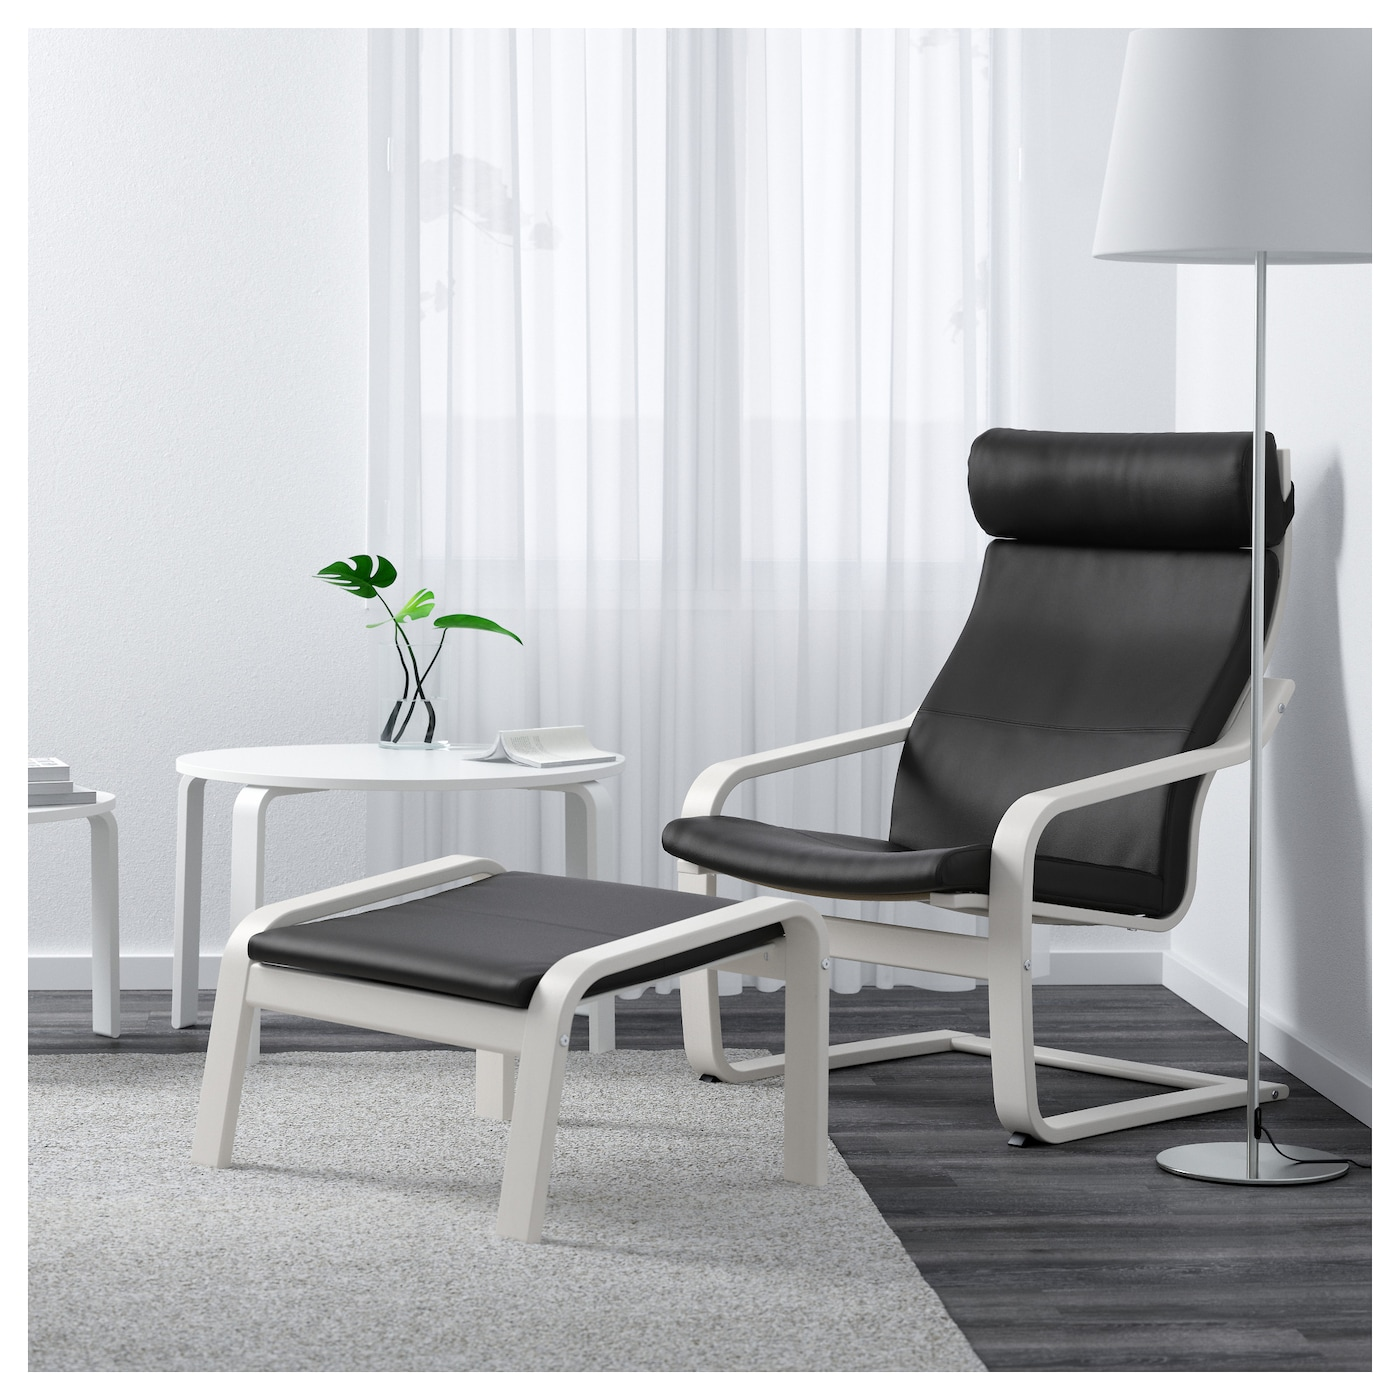 po ng fauteuil blanc smidig noir ikea. Black Bedroom Furniture Sets. Home Design Ideas